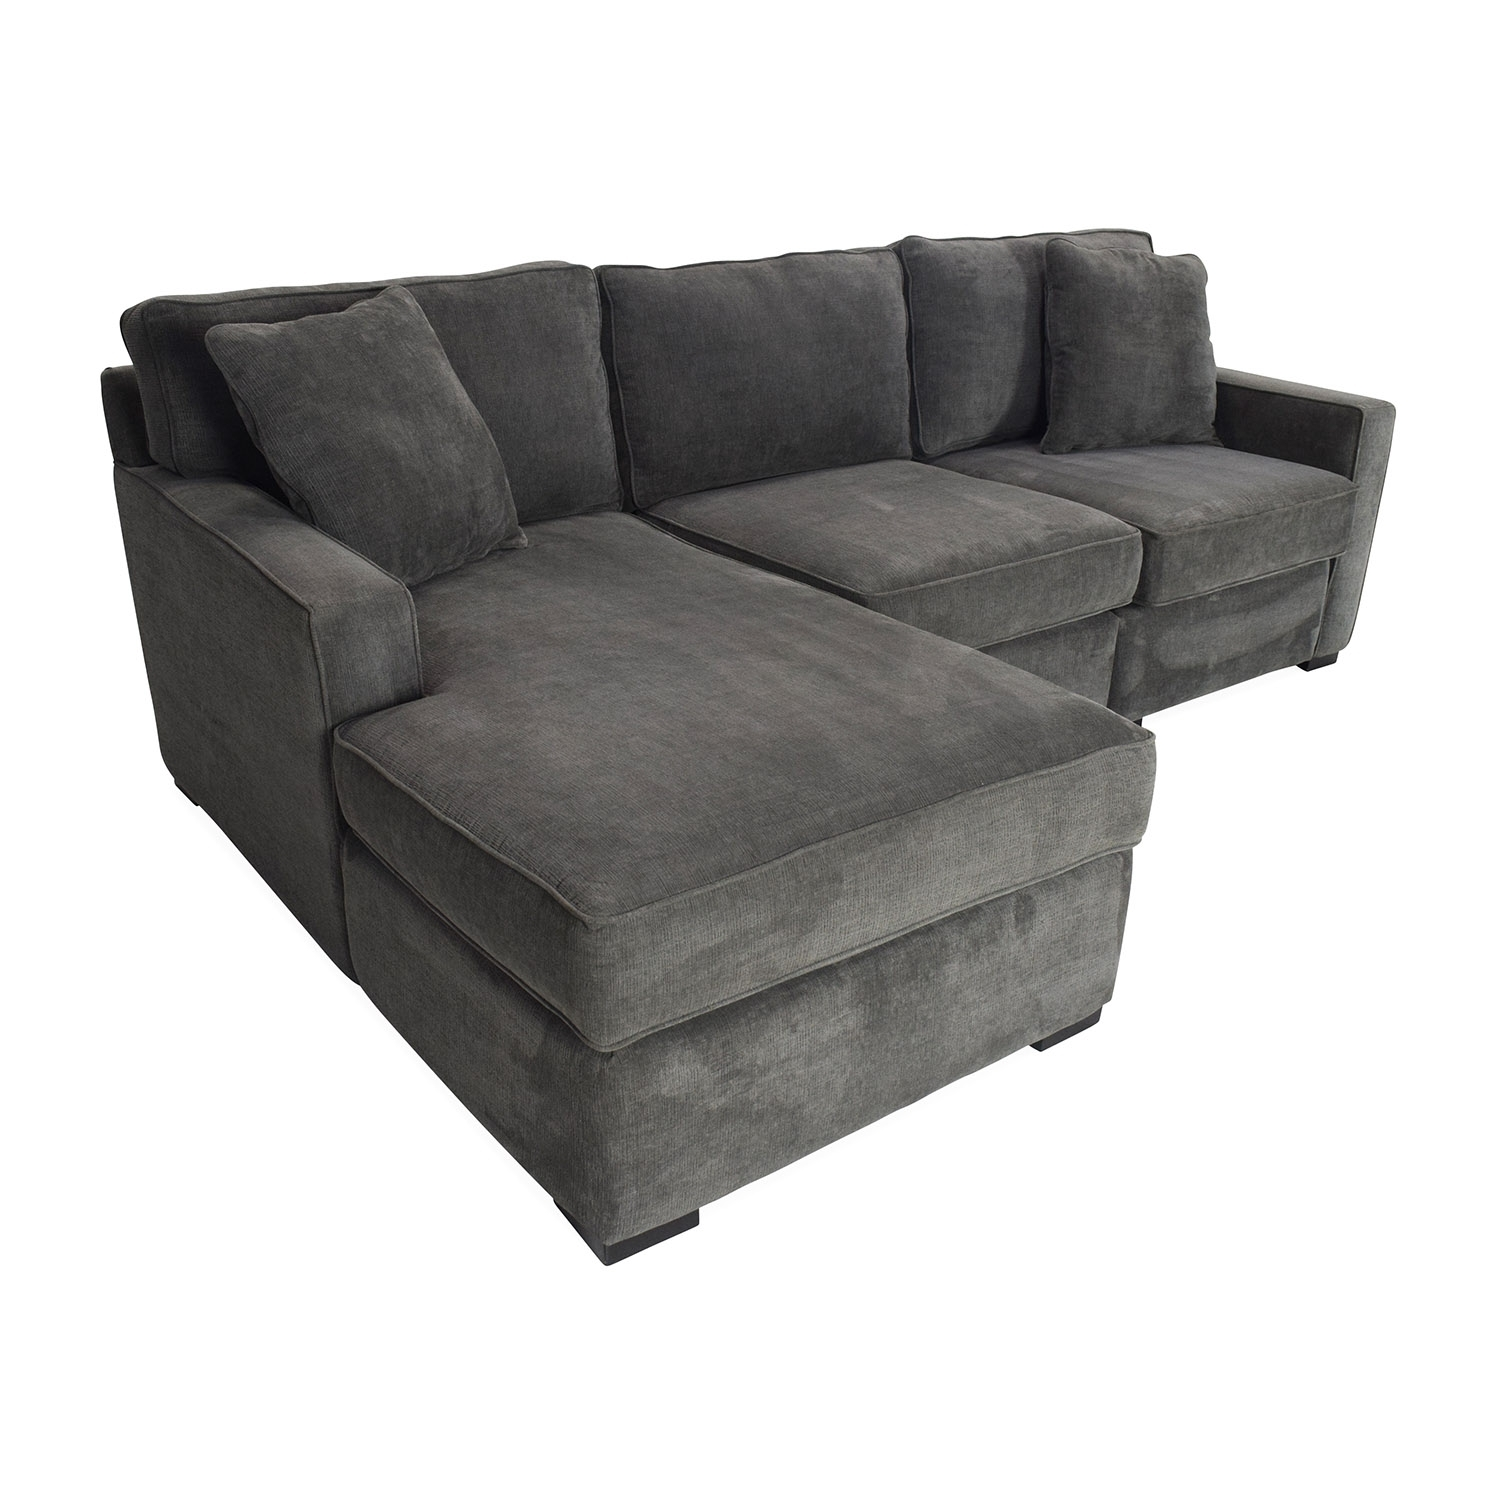 51% Off   Macy's Radley Sectional Sofa / Sofas Throughout Macys Sectional Sofas (Photo 4 of 10)